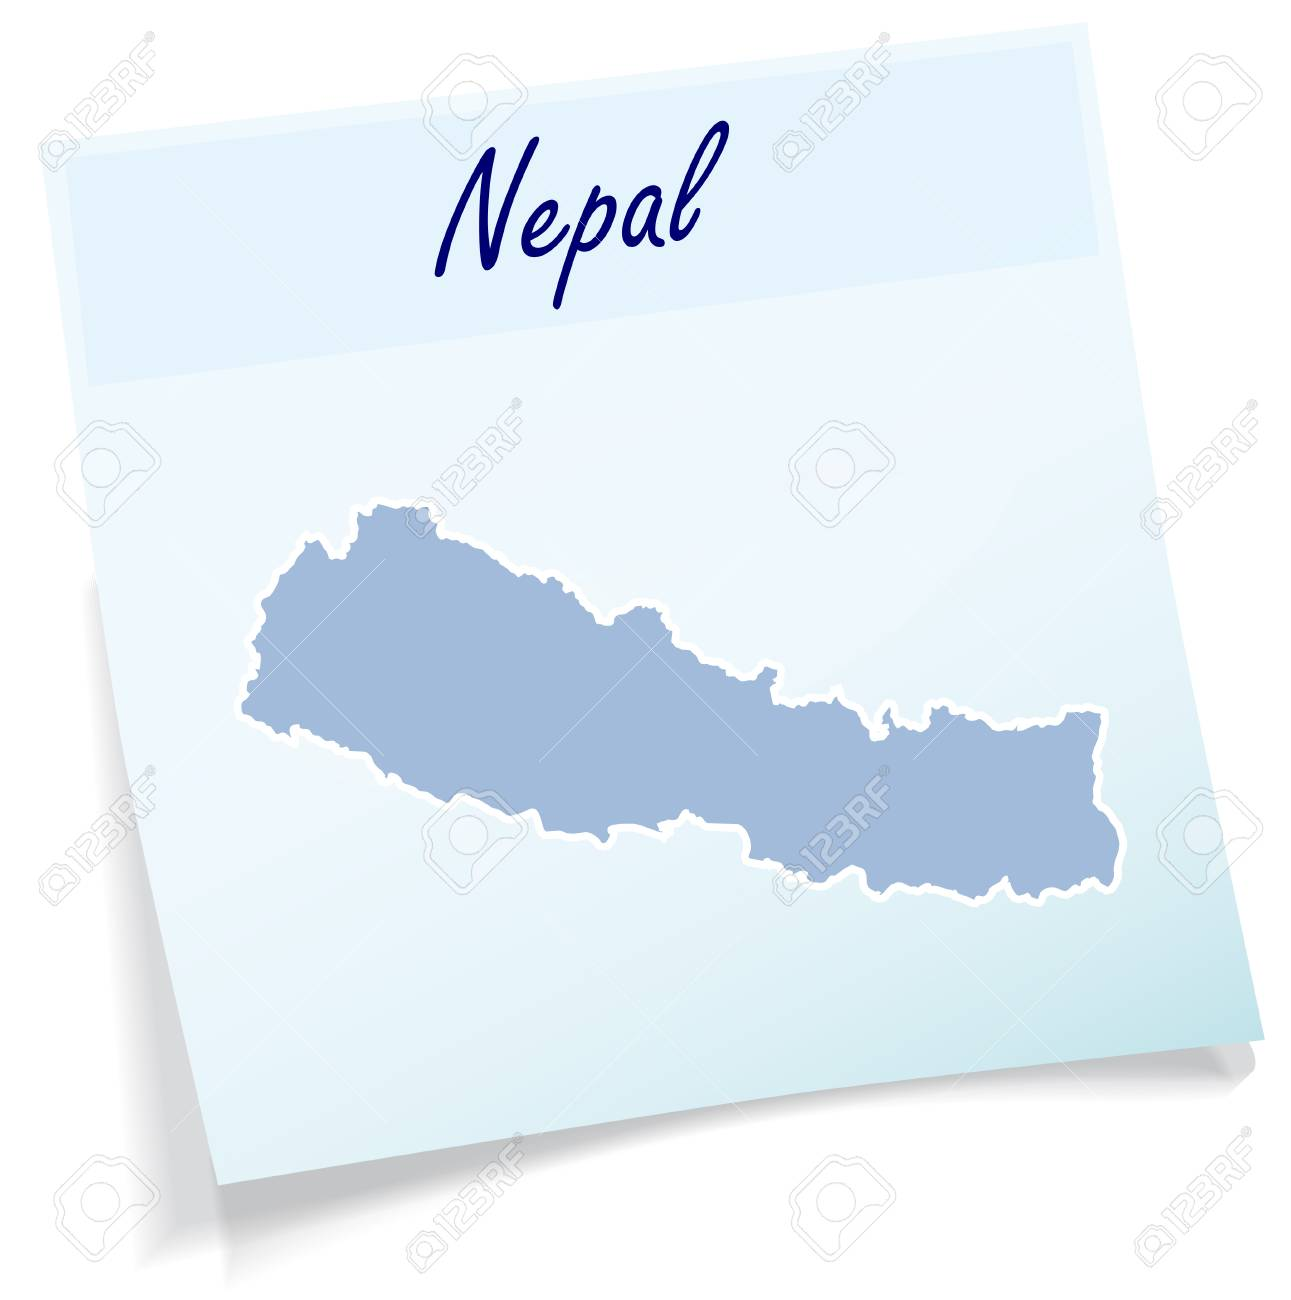 Nepal Karte Download.Map Of Nepal As Sticky Note In Blue